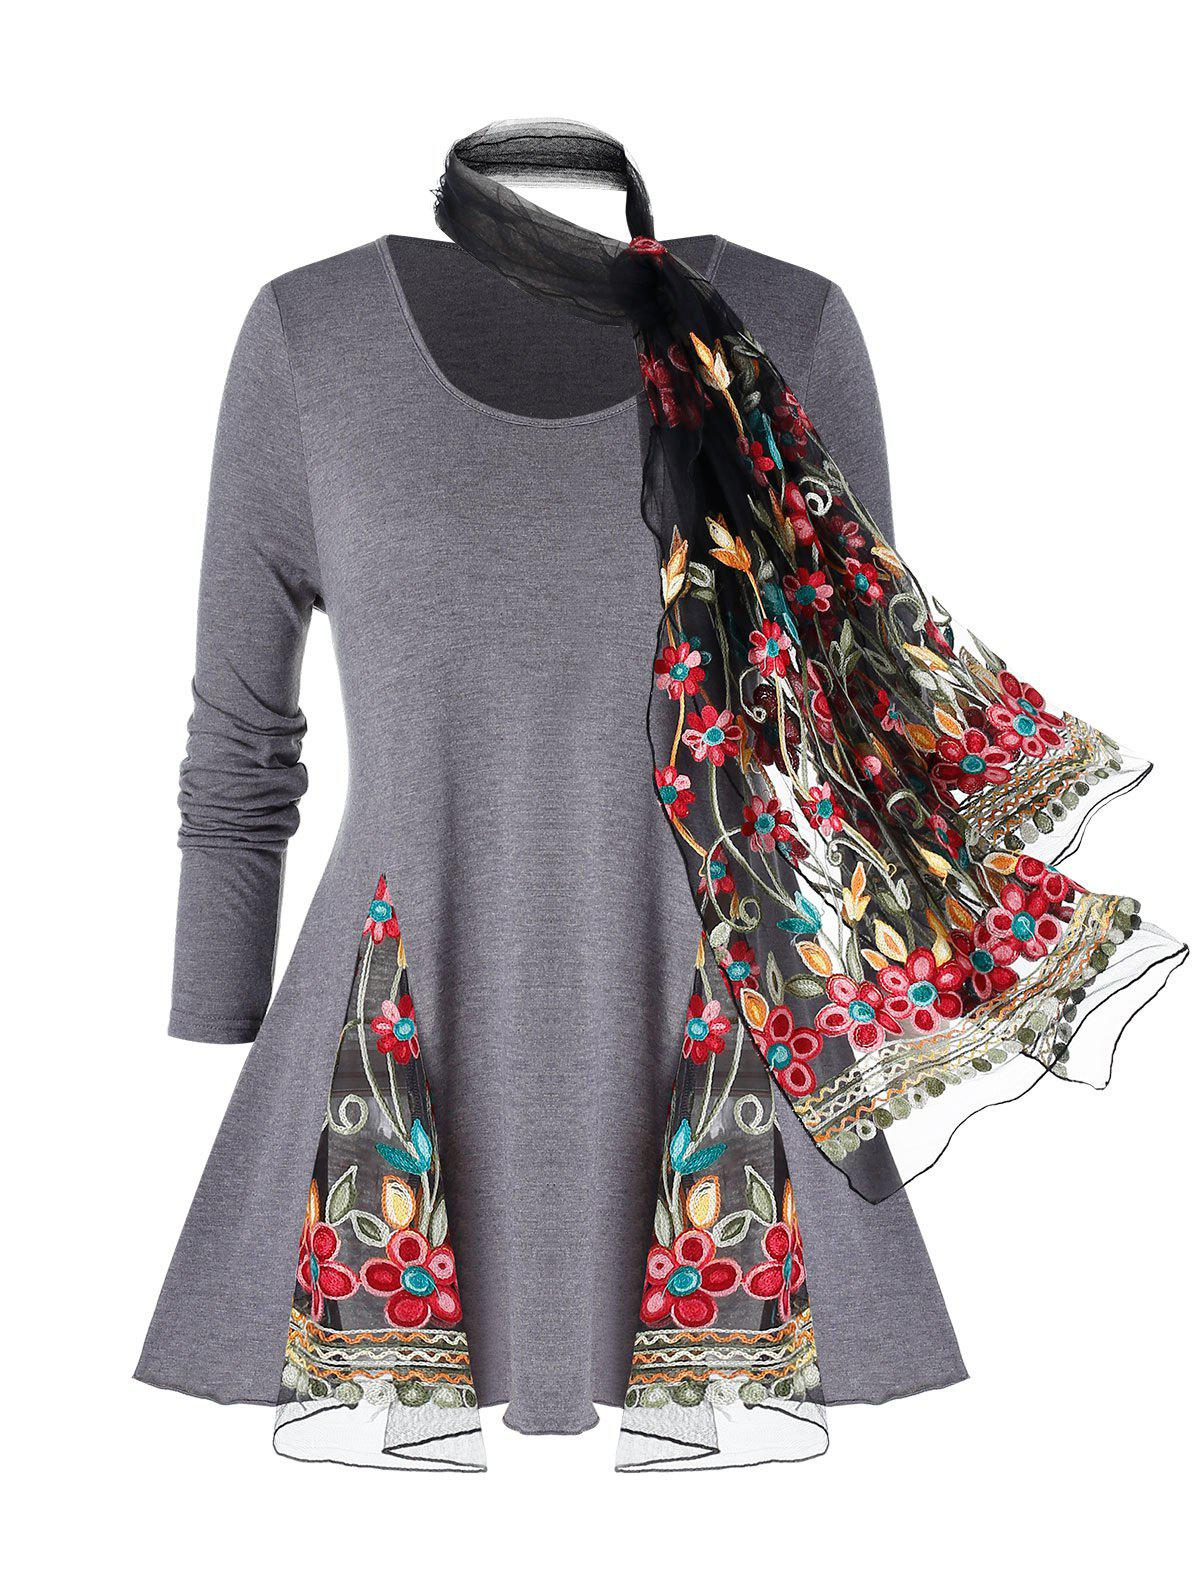 Trendy Plus Size Mesh Insert Space Dye T Shirt And Embroidery Scarf